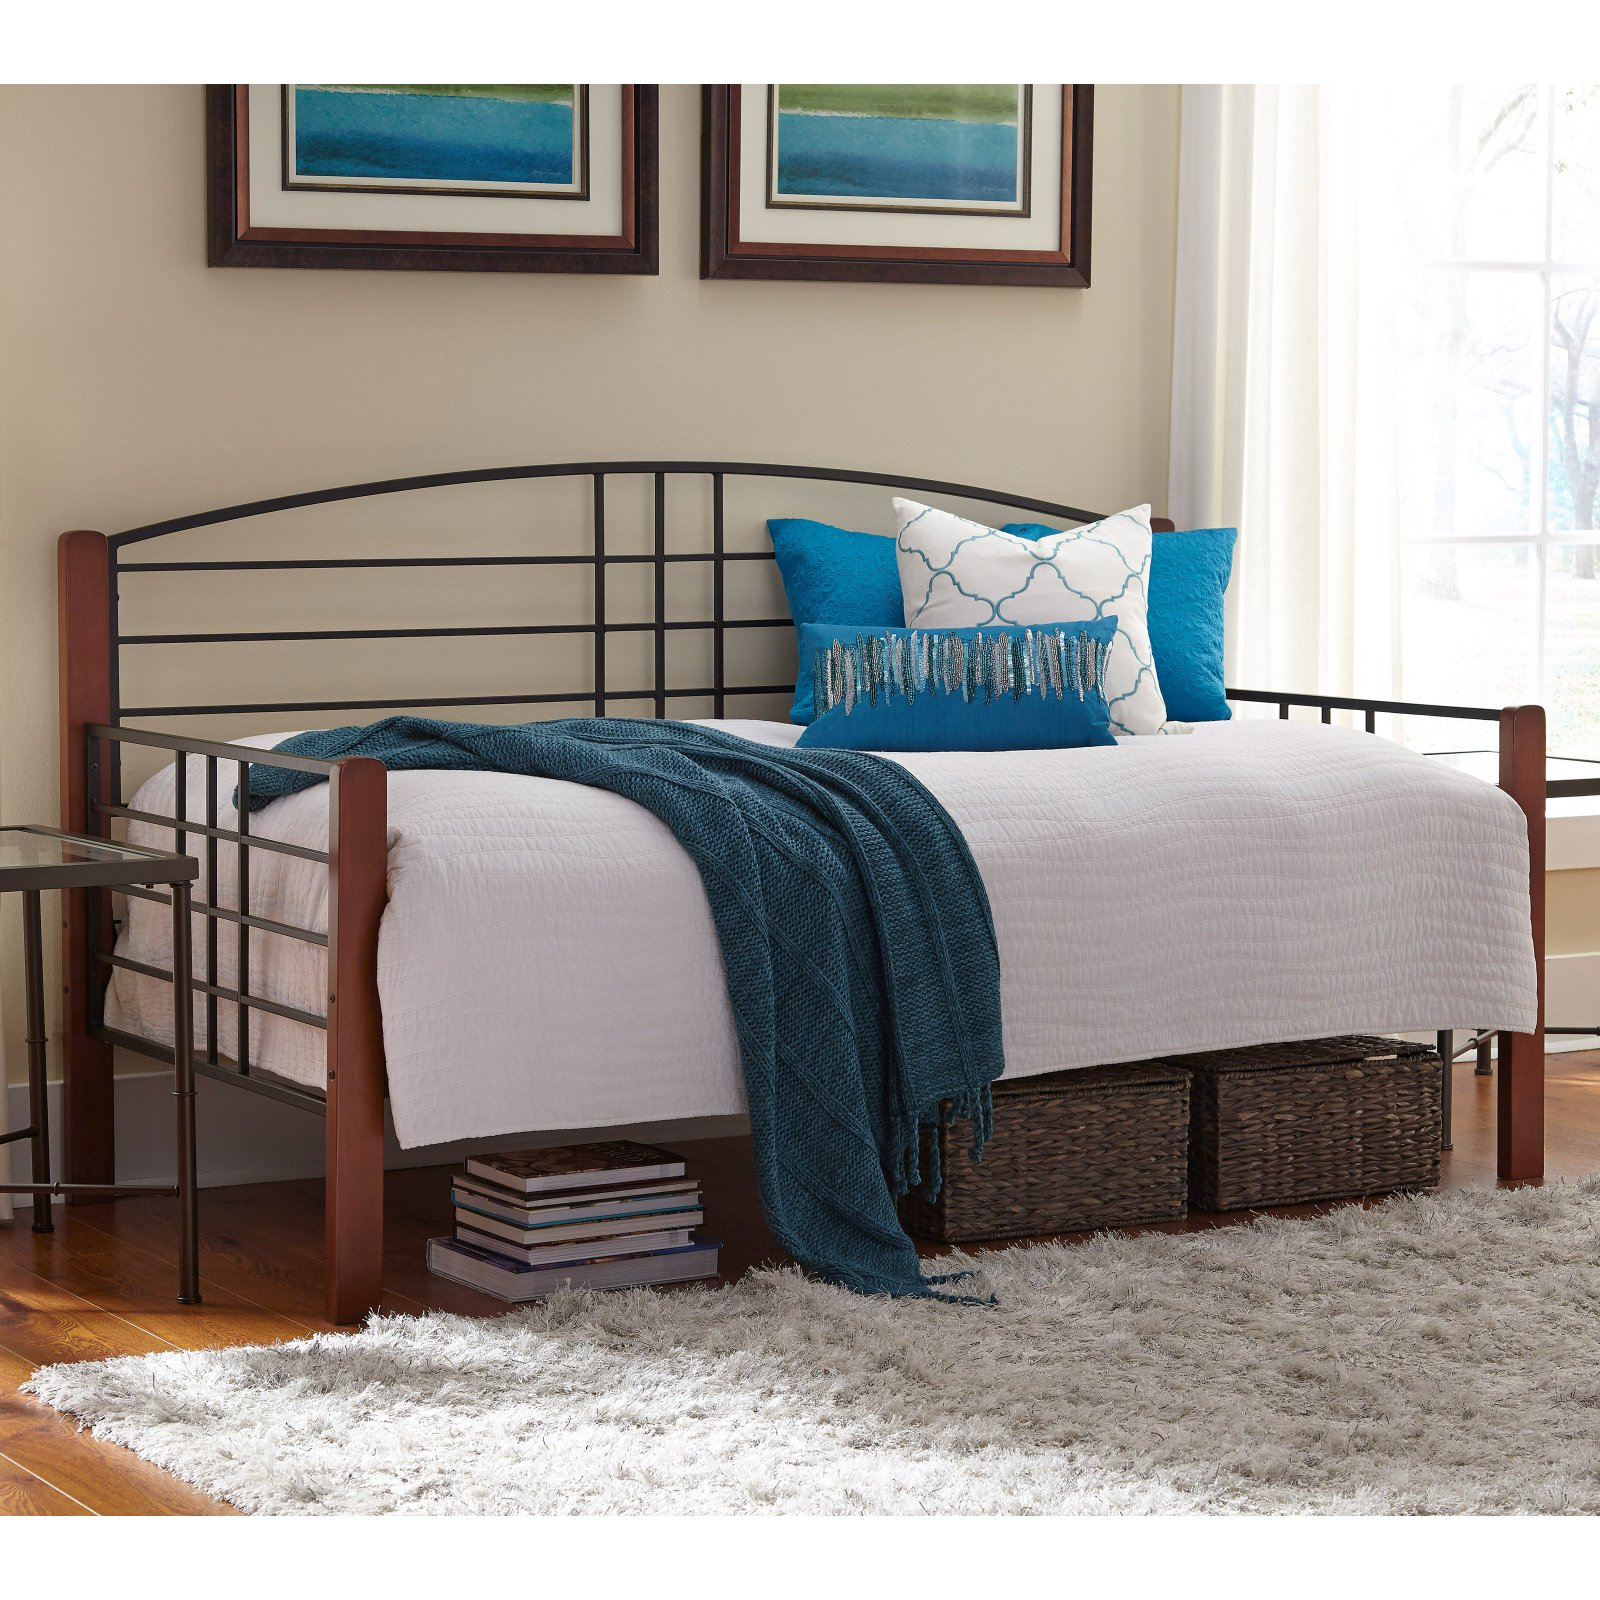 Dayton Complete Metal Day Bed with Arched Back Panel and Link Spring, Black Grain Finish, Twin by Fashion Bed Group